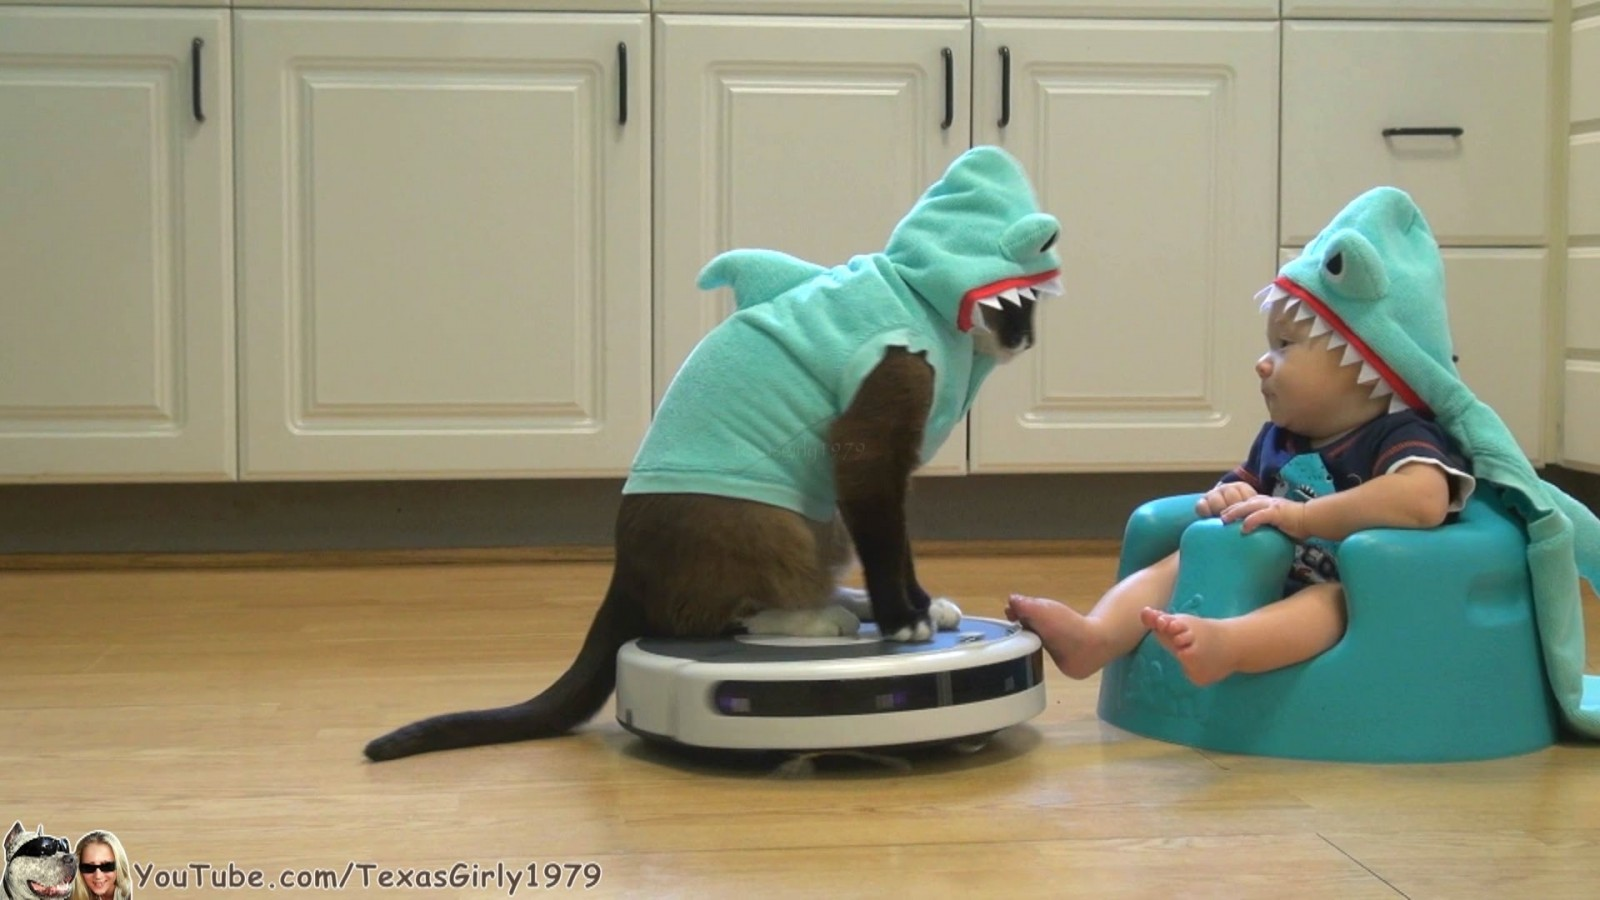 Shark Cat on a Roomba with his new sidekick....